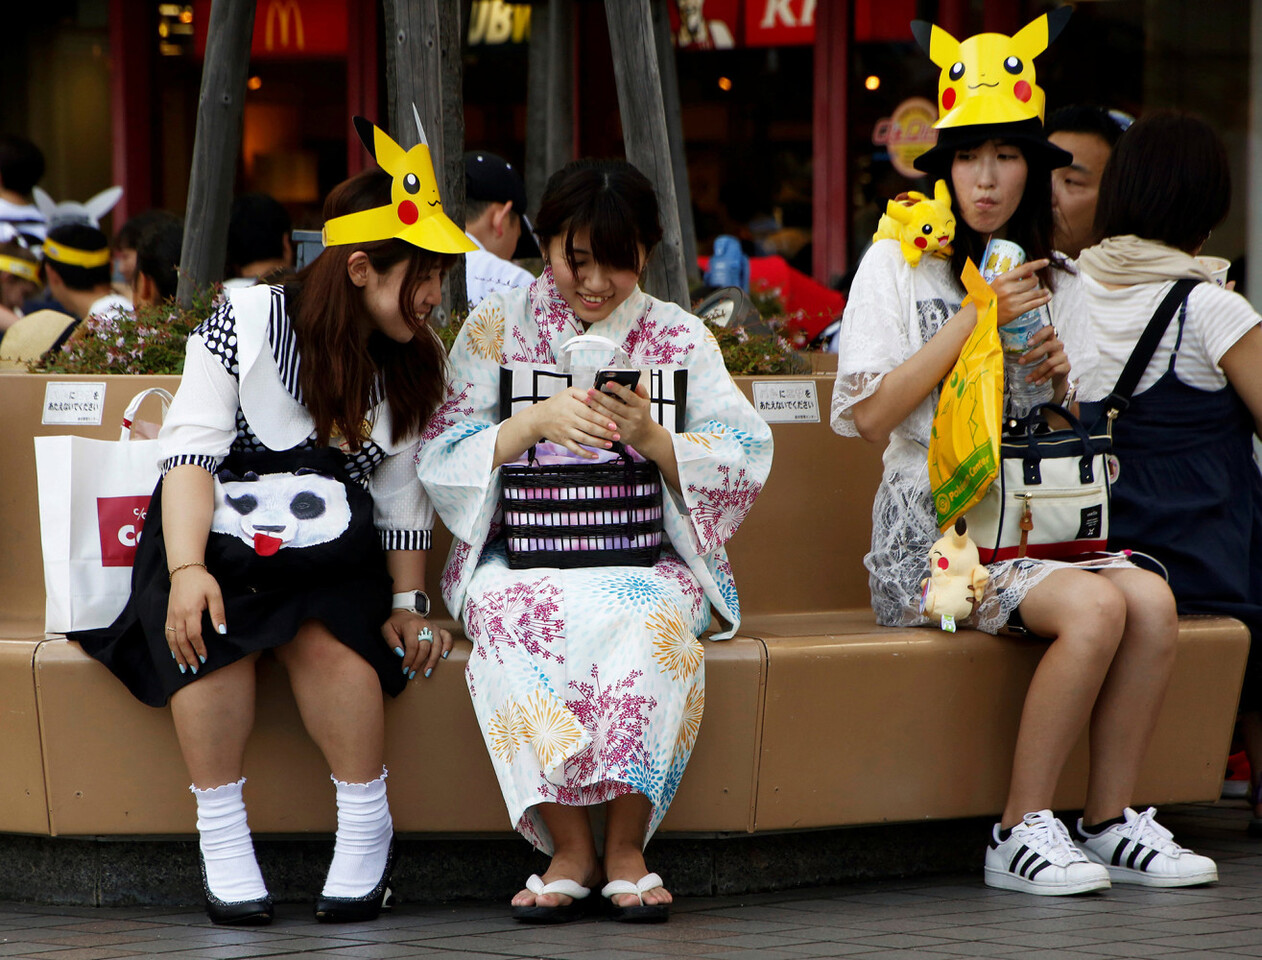 A girl clad in a yukata, or a casual summer kimono, and women wearing hats of Pokemon' class=